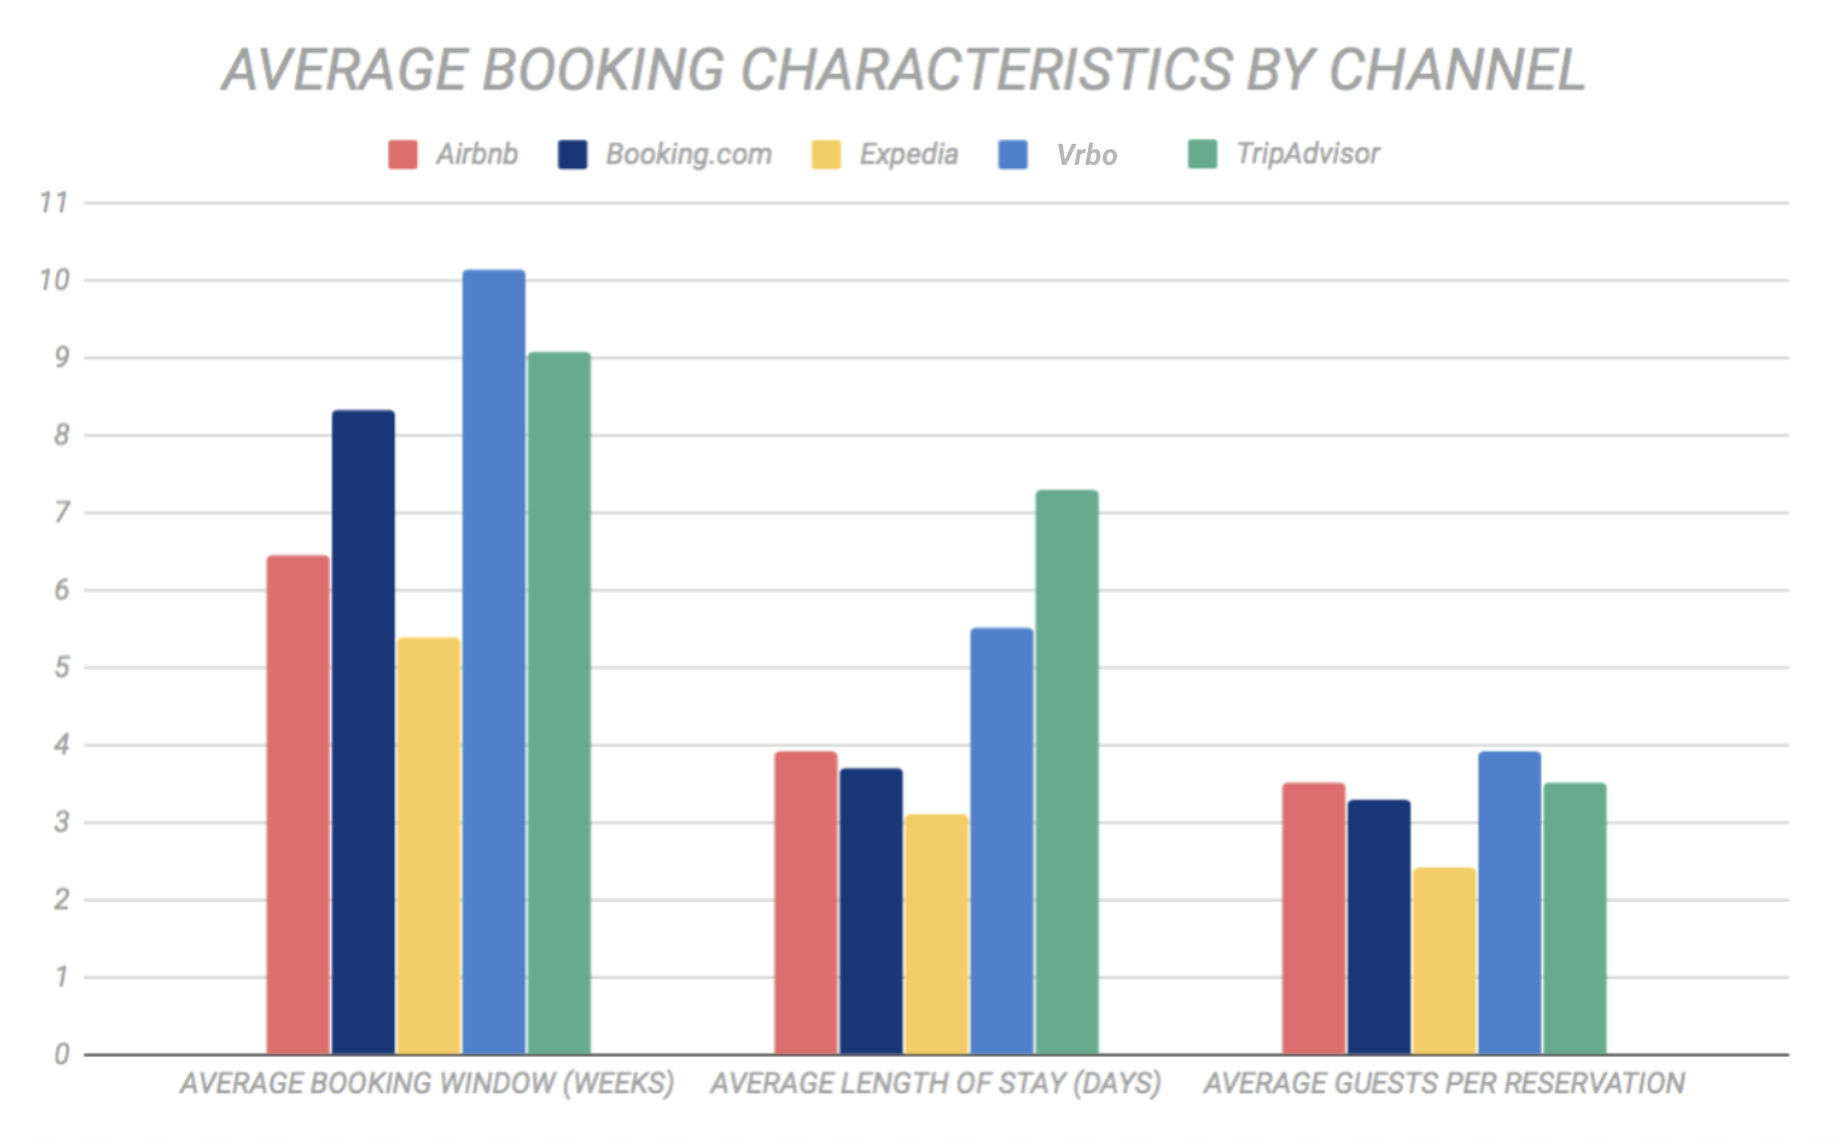 Average Booking Characteristics by Channel